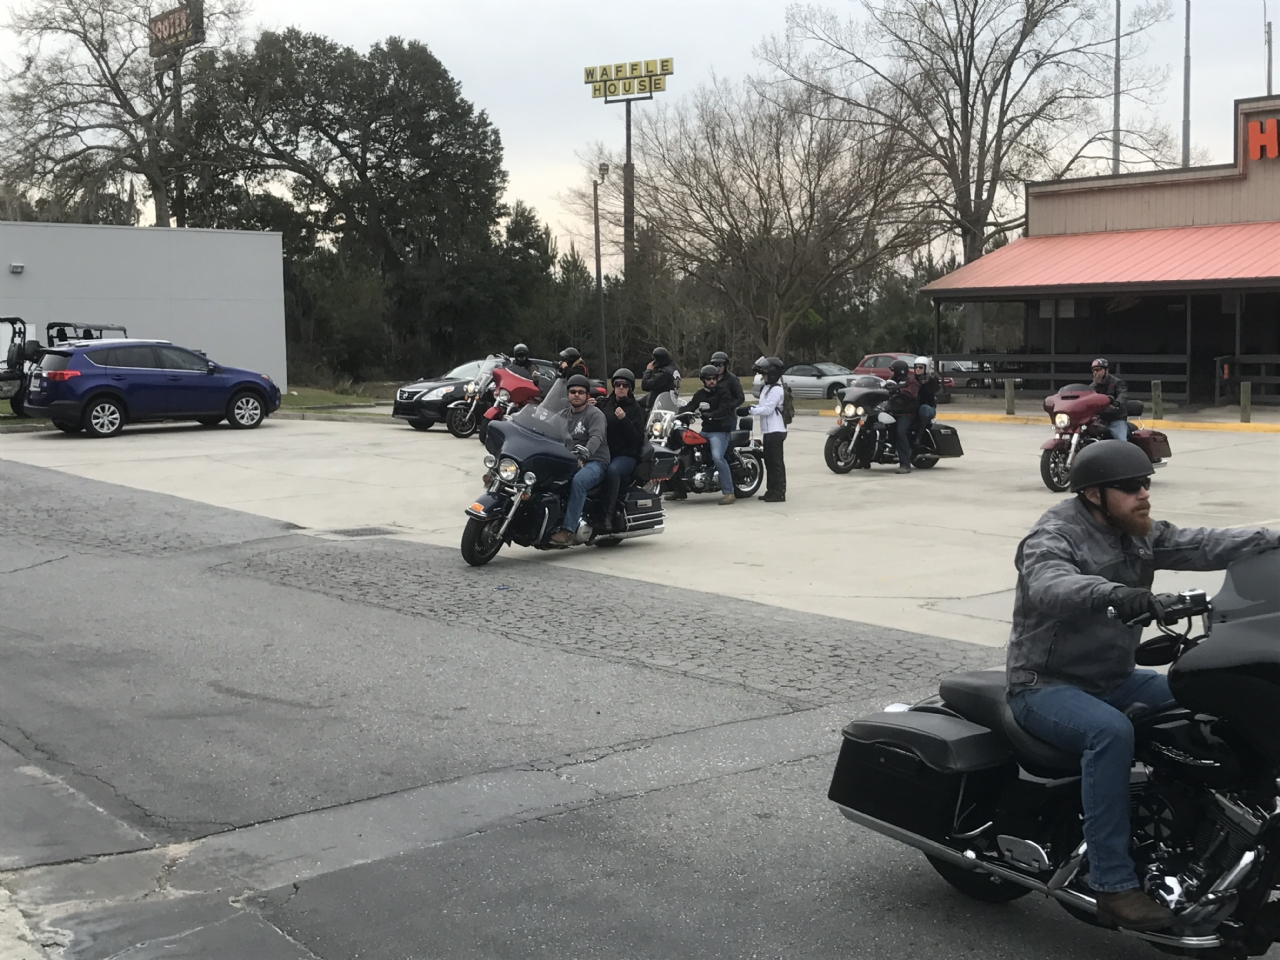 Our 1st attempt at hosting a Poker Run as a Fundraiser! 